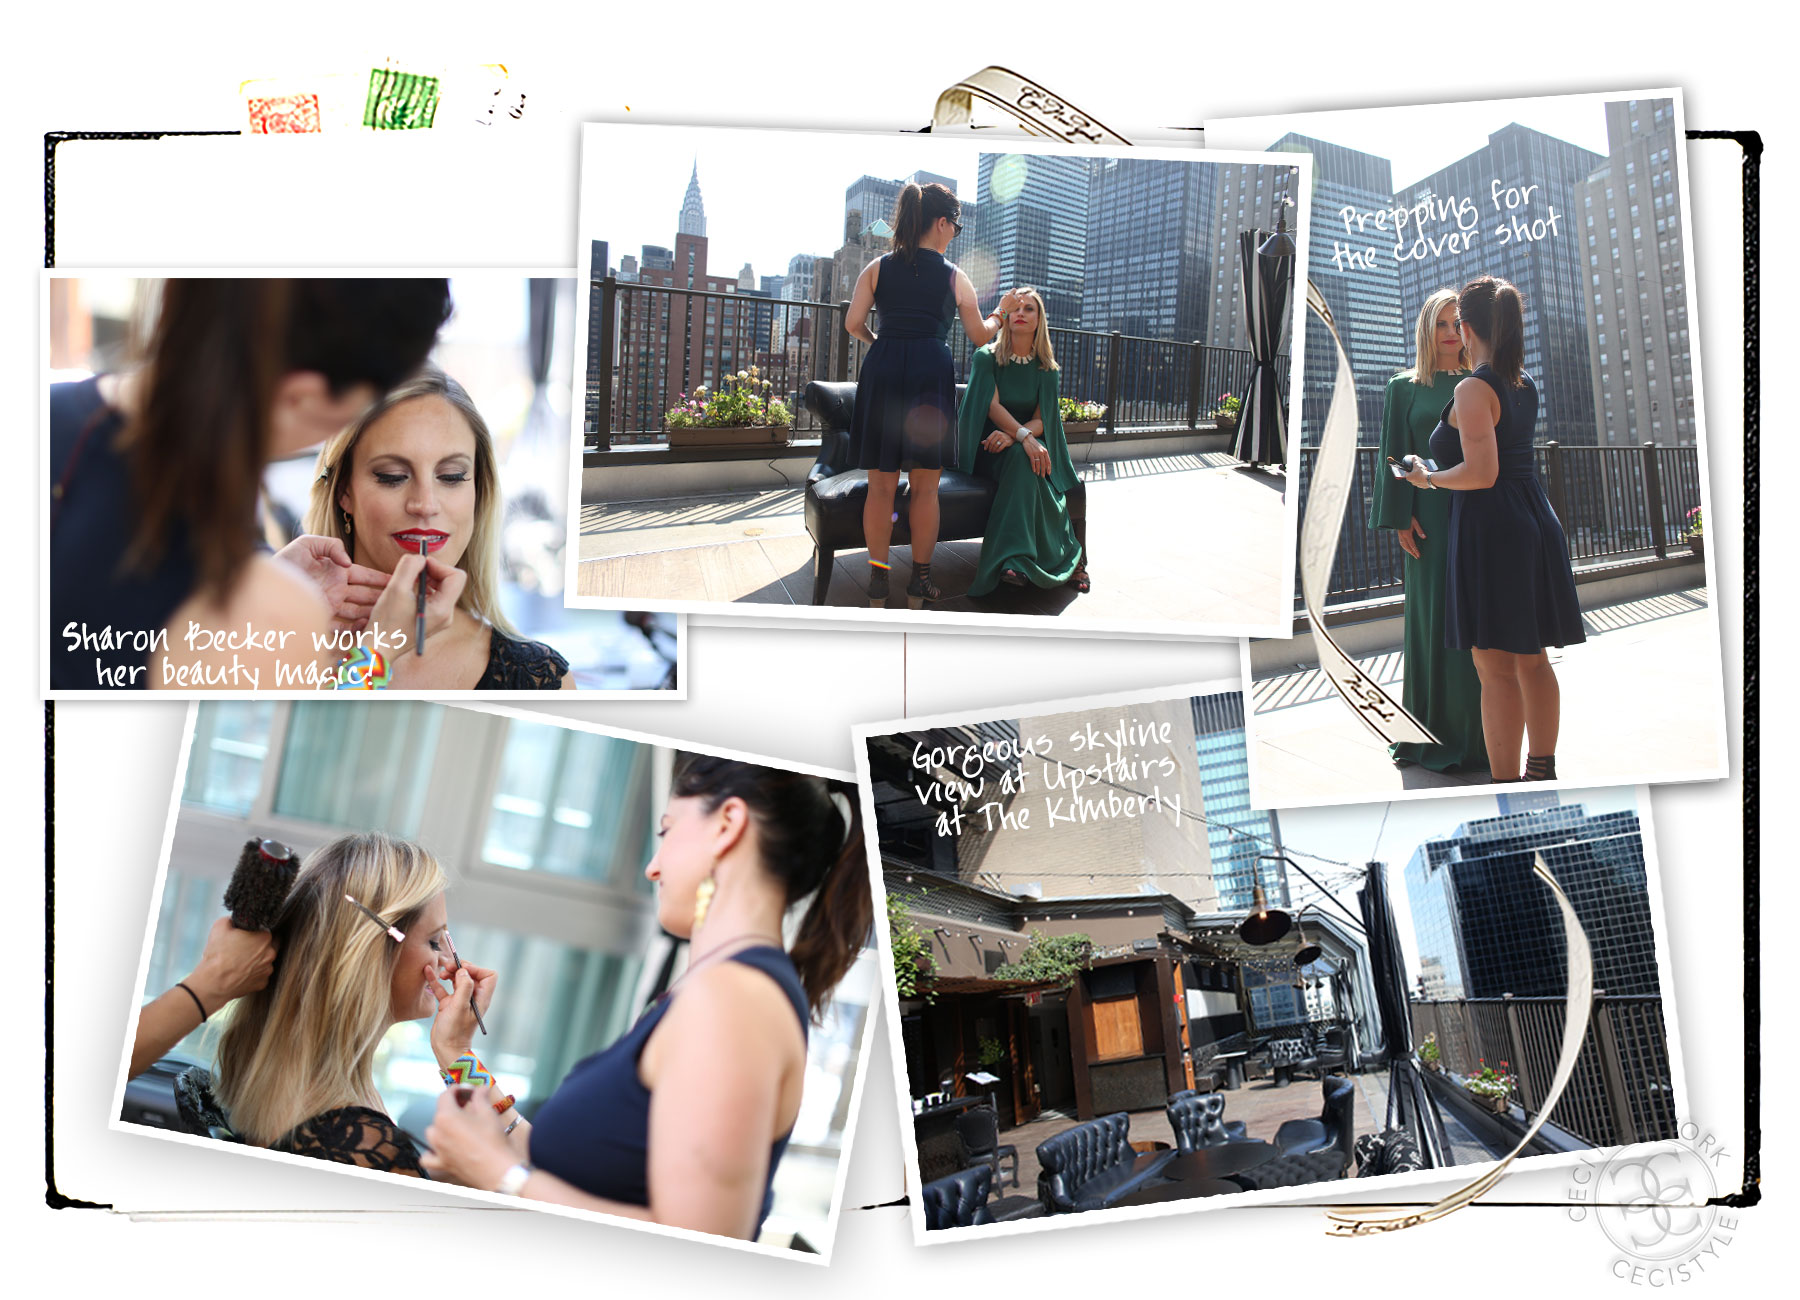 Behind the Scenes - CeciStyle Magazine v264 - Rooftop Romance